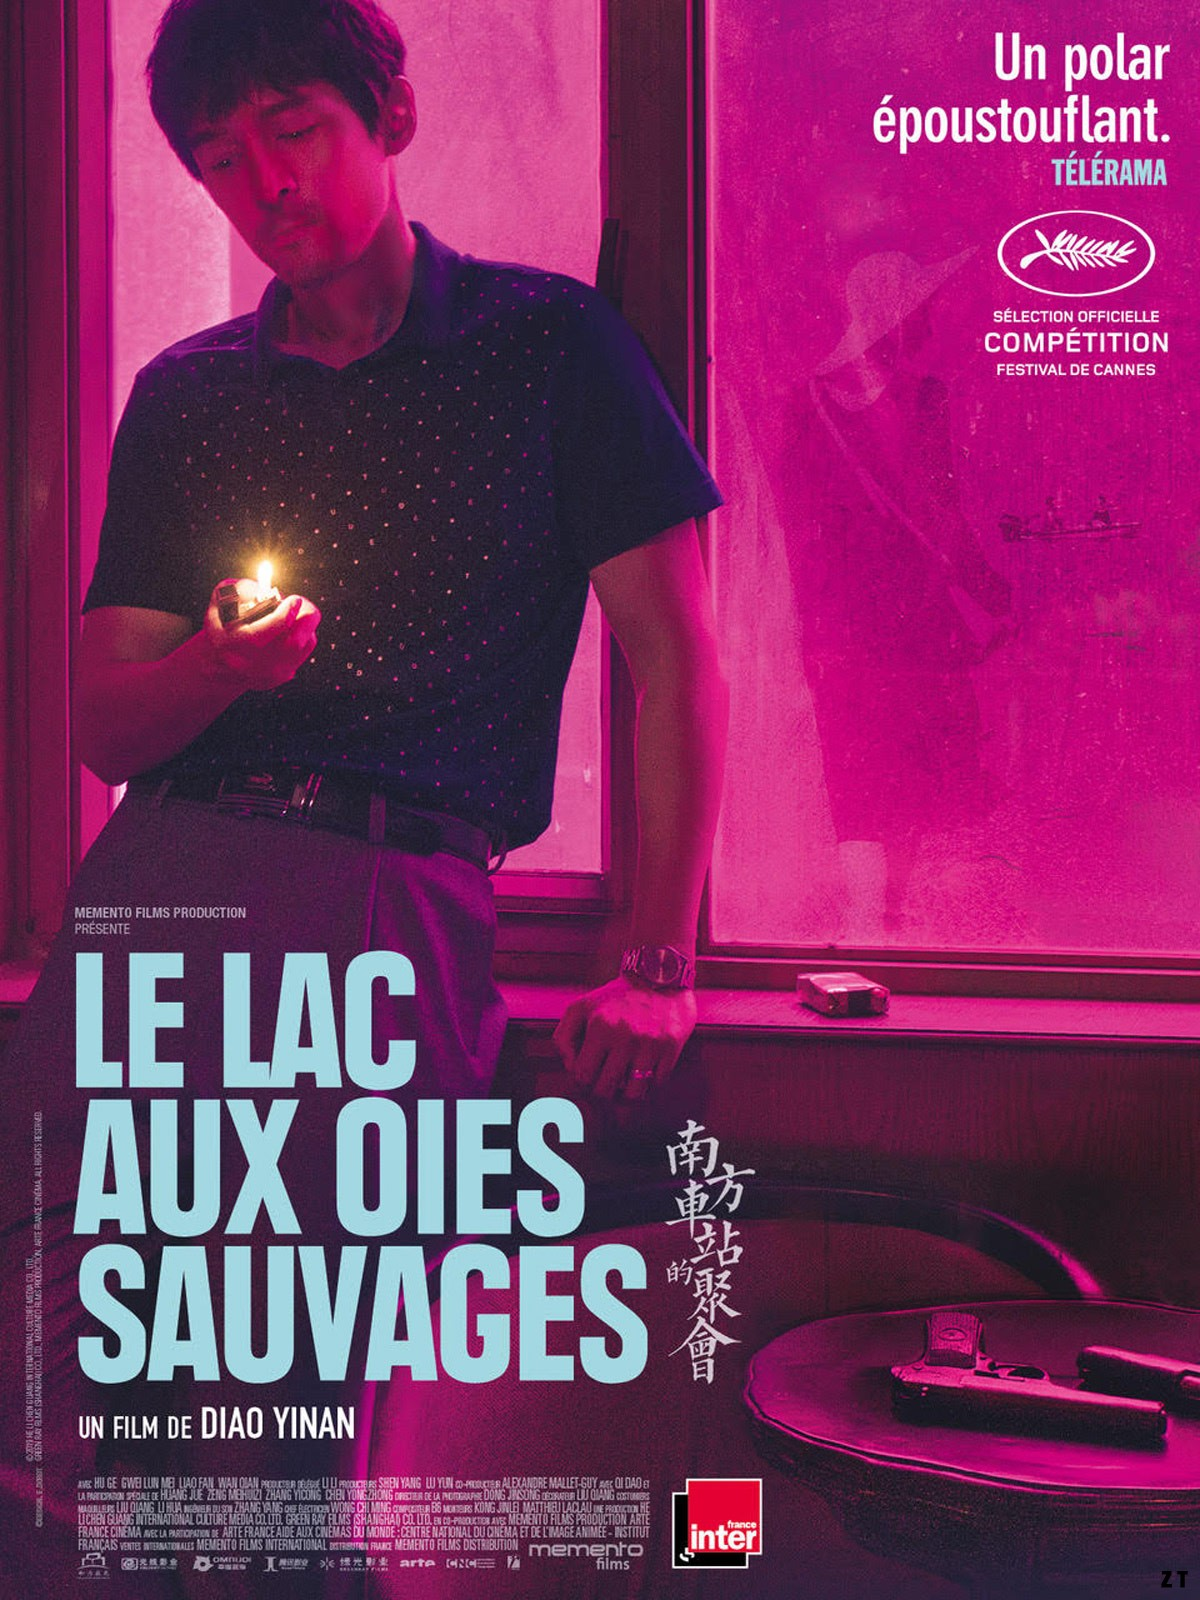 Le Lac aux oies sauvages [HDRip] [Streaming] [Telecharger]